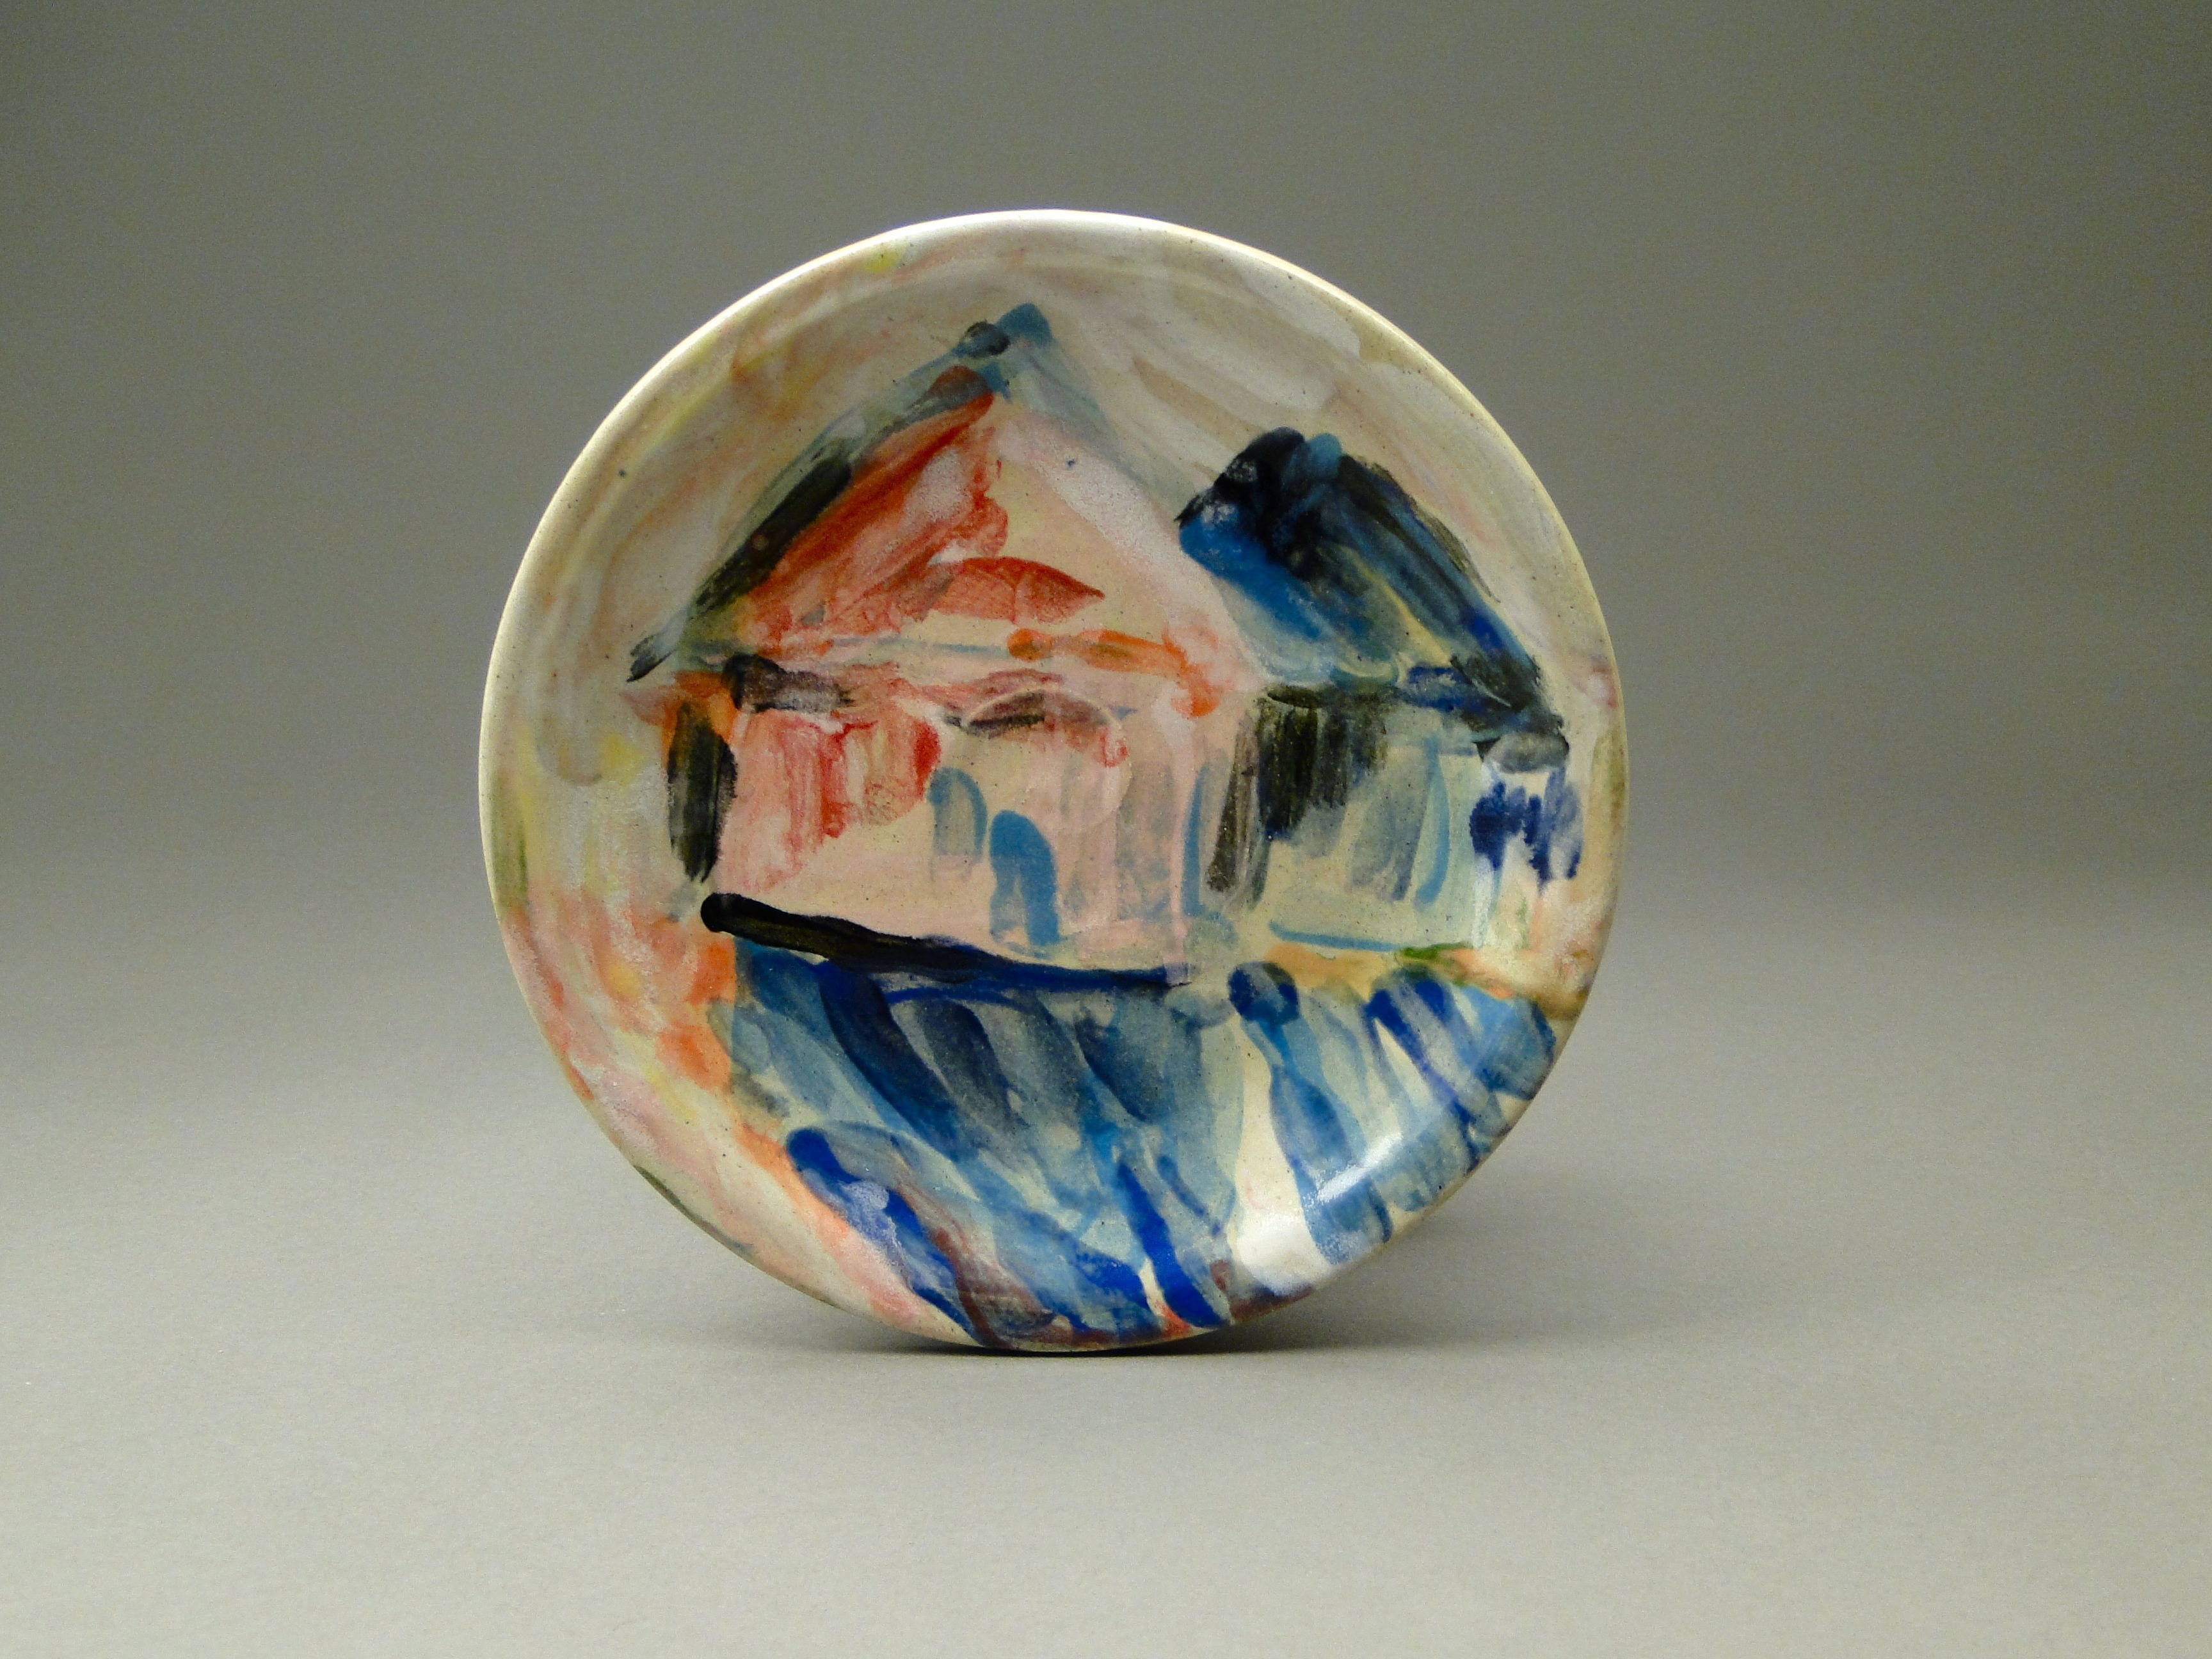 Painted Stoneware, Paige Dansinger, Artist Collaboration